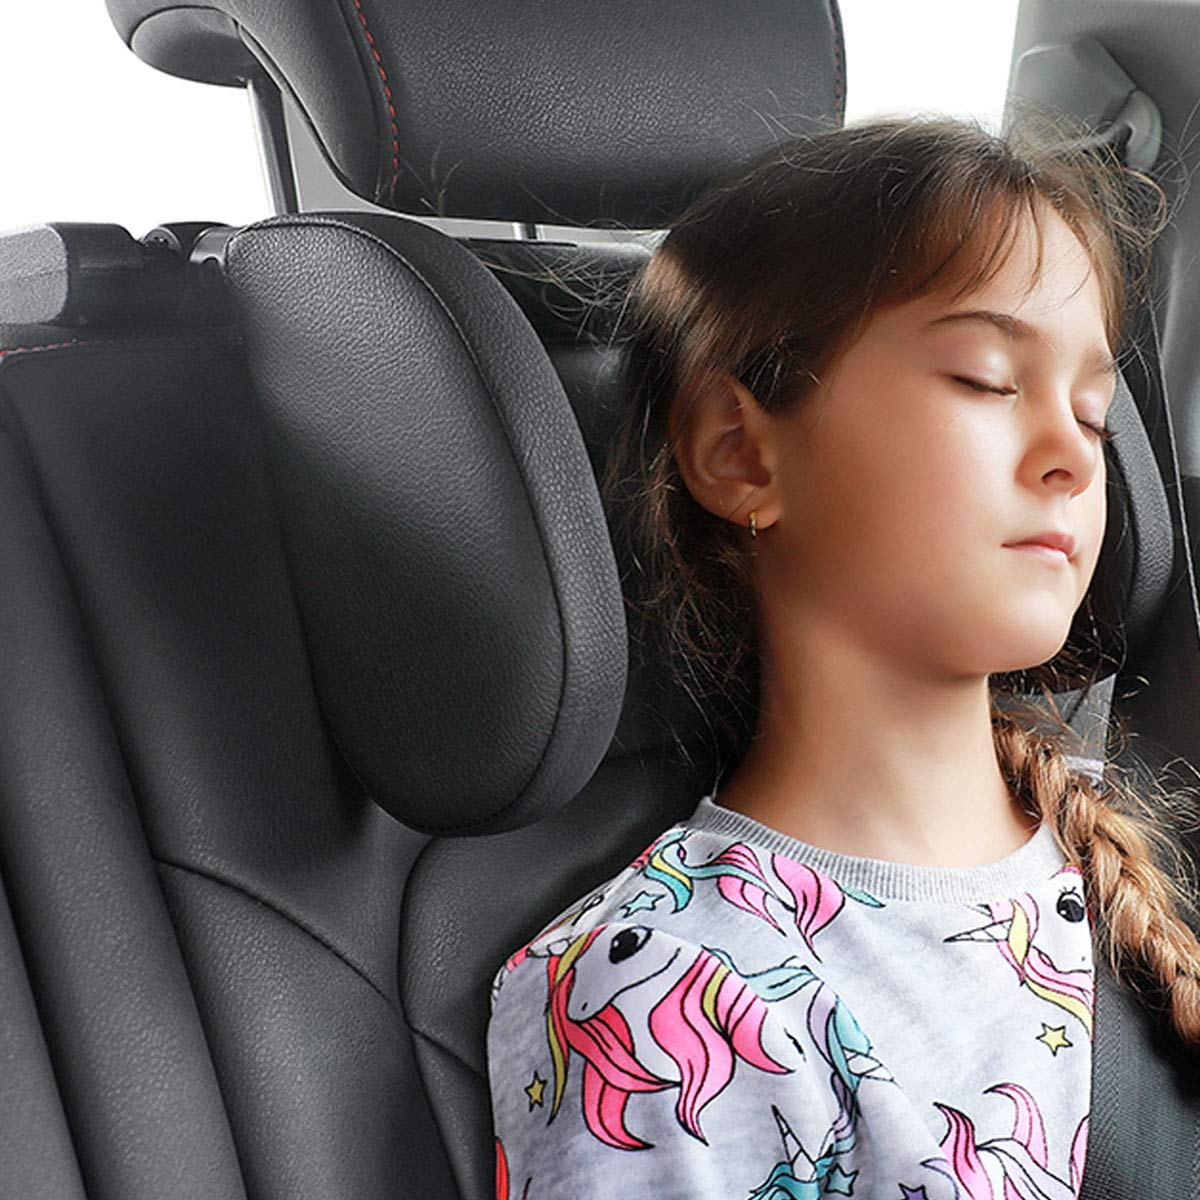 Car Seat Headrest Pillow 180 Degree Adjustable Both Sides Travel Sleeping Cushion for Kids Adults Travel Head Neck Support Detachable,Premium seat held Pillow Black Headrest for car